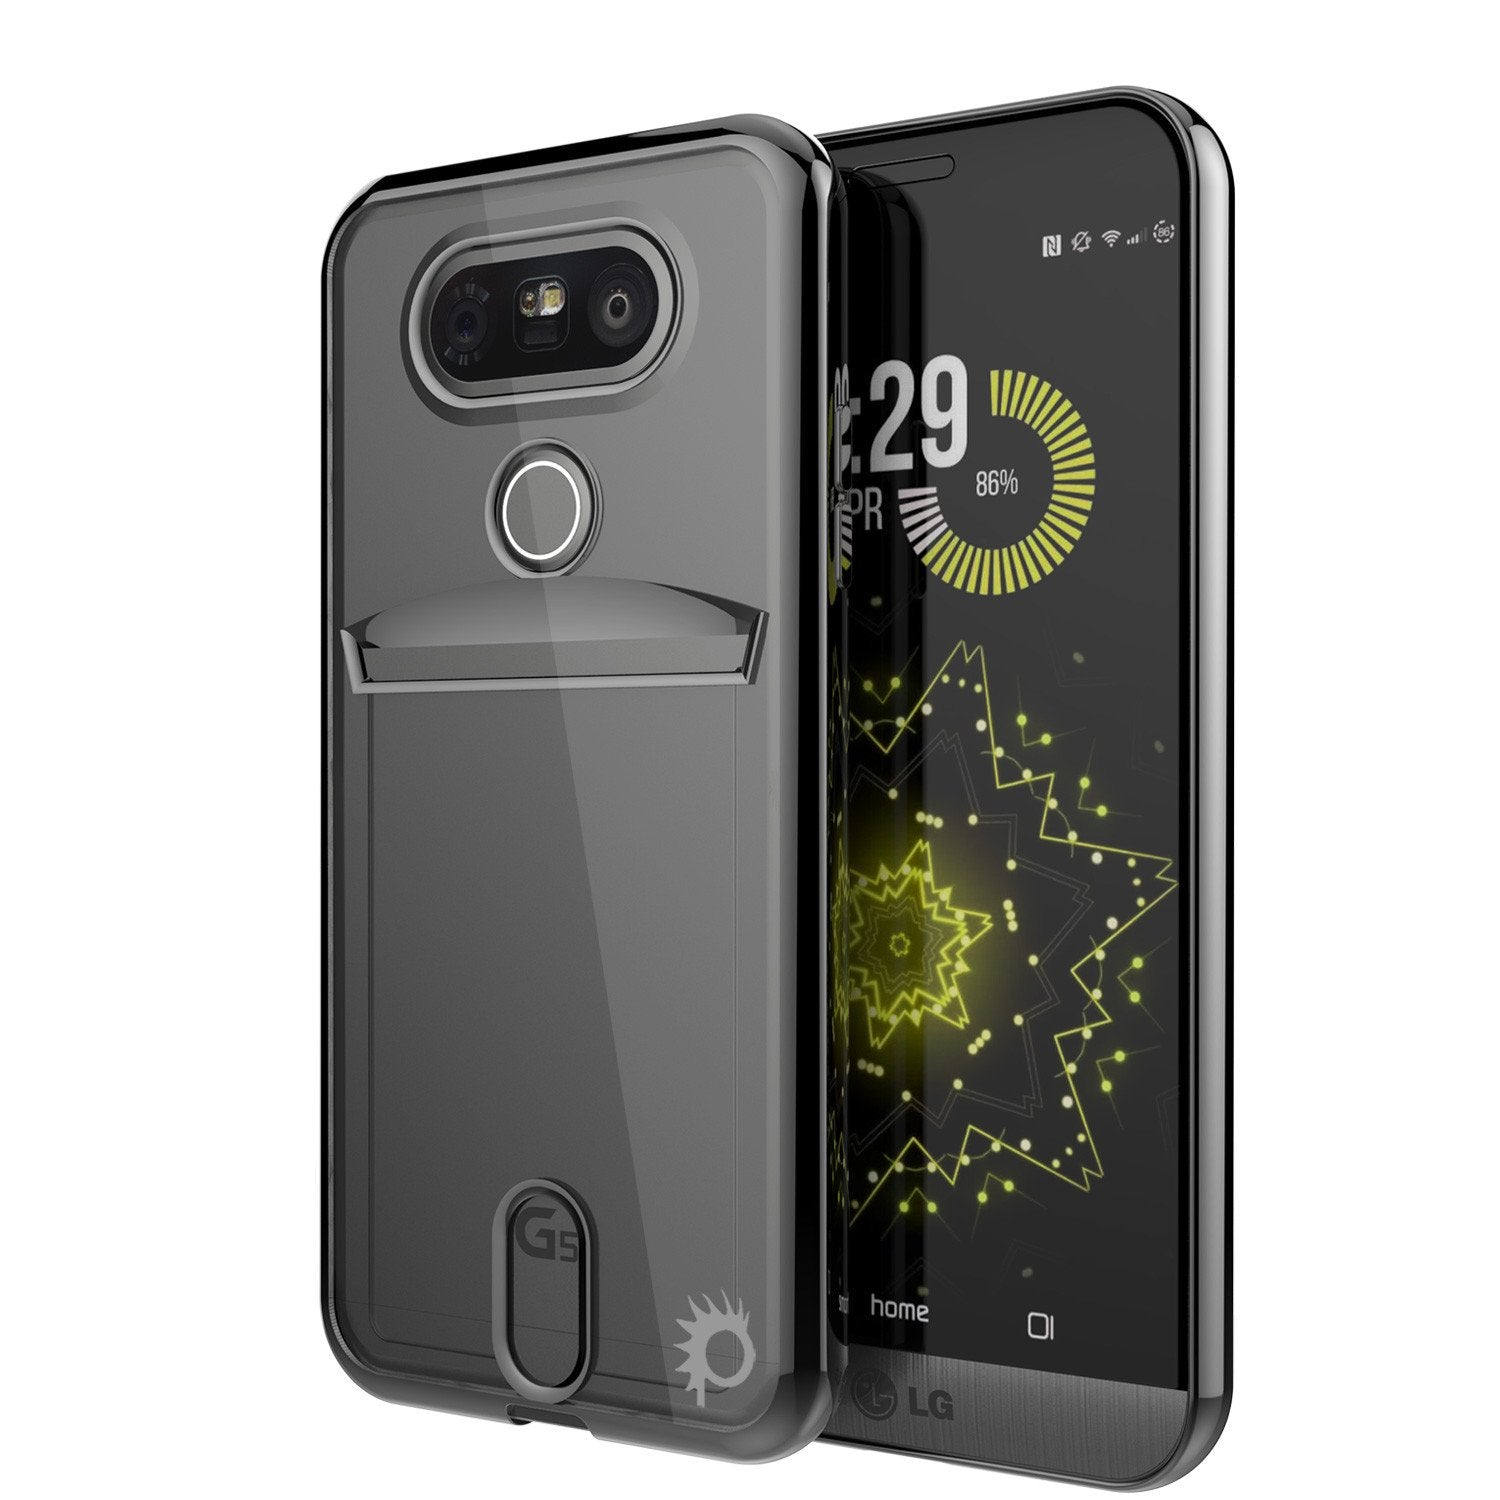 LG G5 Case, PUNKCASE® Black LUCID Series | Card Slot | PUNK SHIELD Screen Protector | Ultra Fit